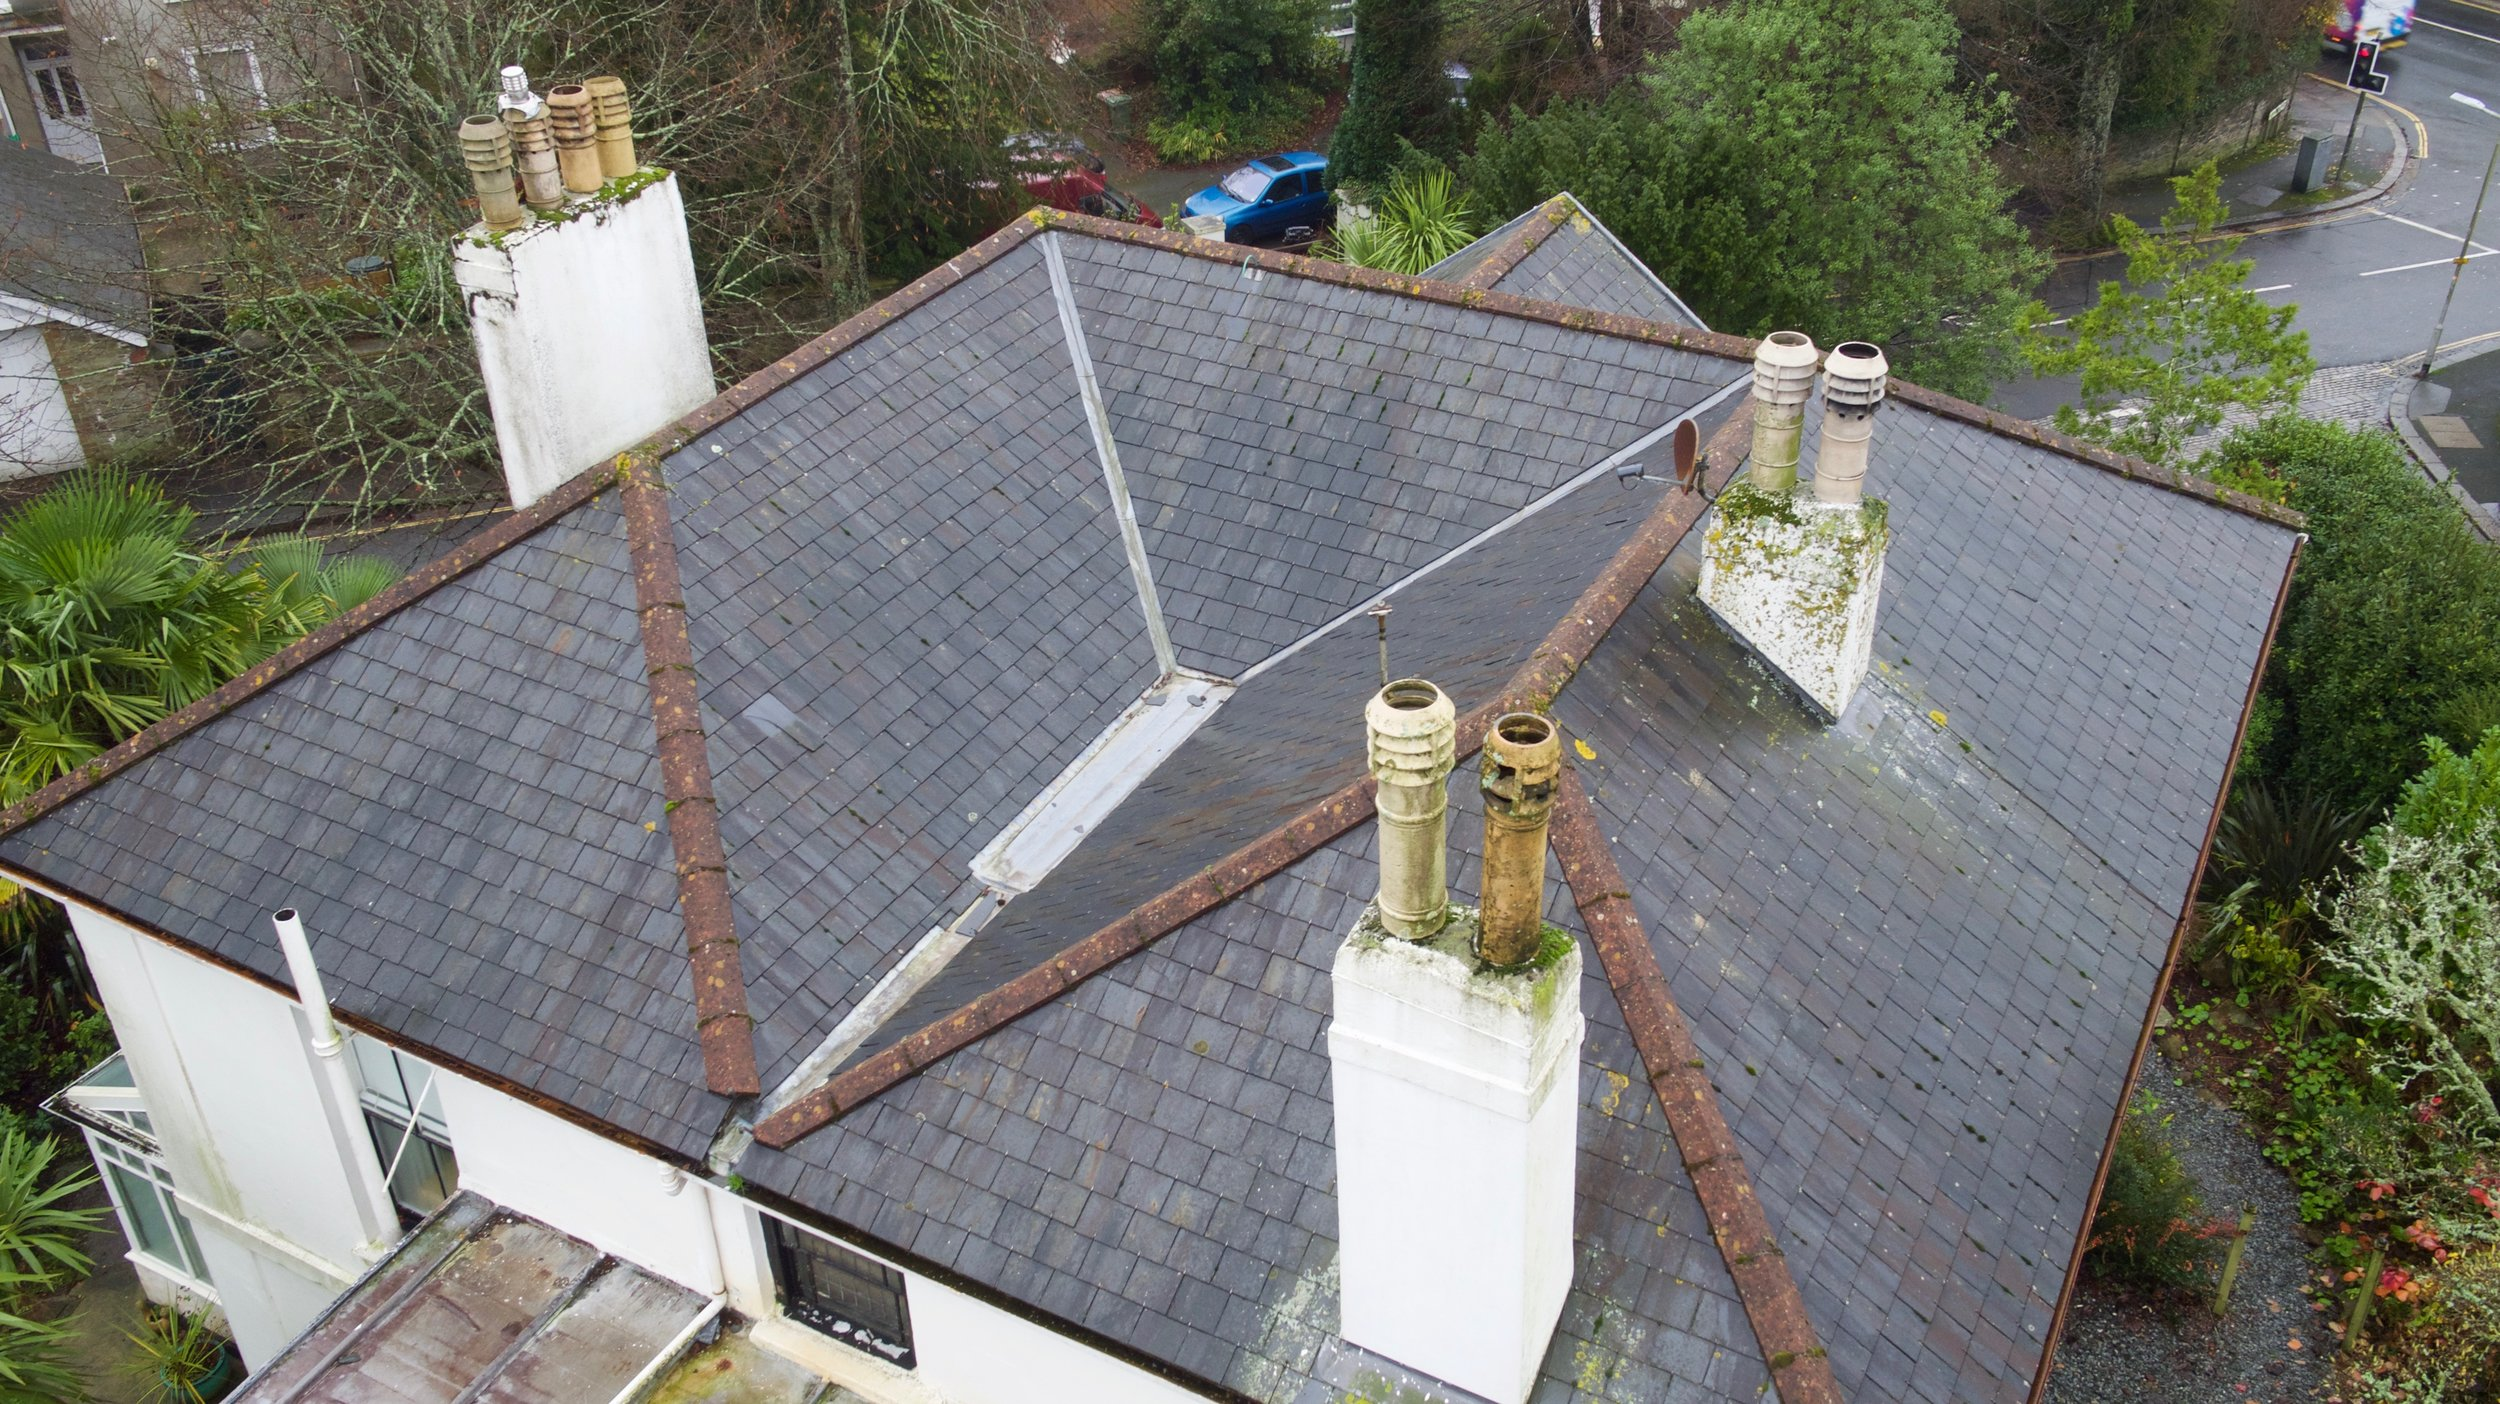 Overview of a roof in Plymouth. Our Cilent was renovated his house and found damp in the upstairs rooms. From these photographs he was able to inform building crew as to where a link maybe starting from.